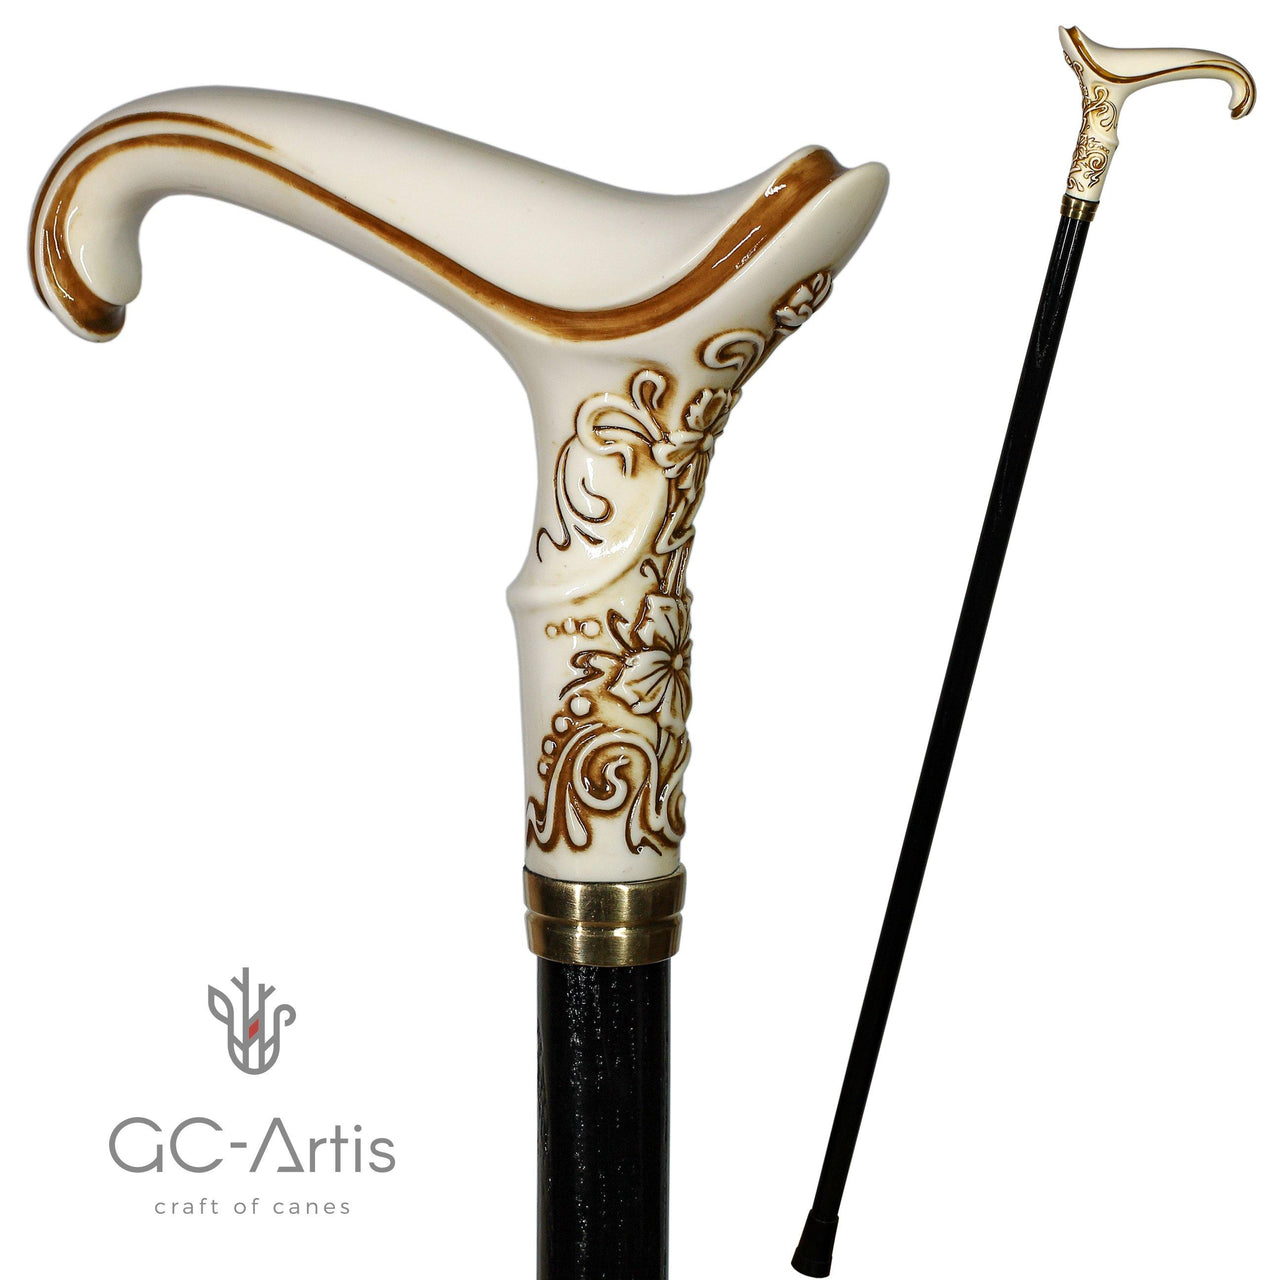 Elegy Elegant Pretty Walking stick cane white Ivory color - GC-Artis Walking Sticks Canes